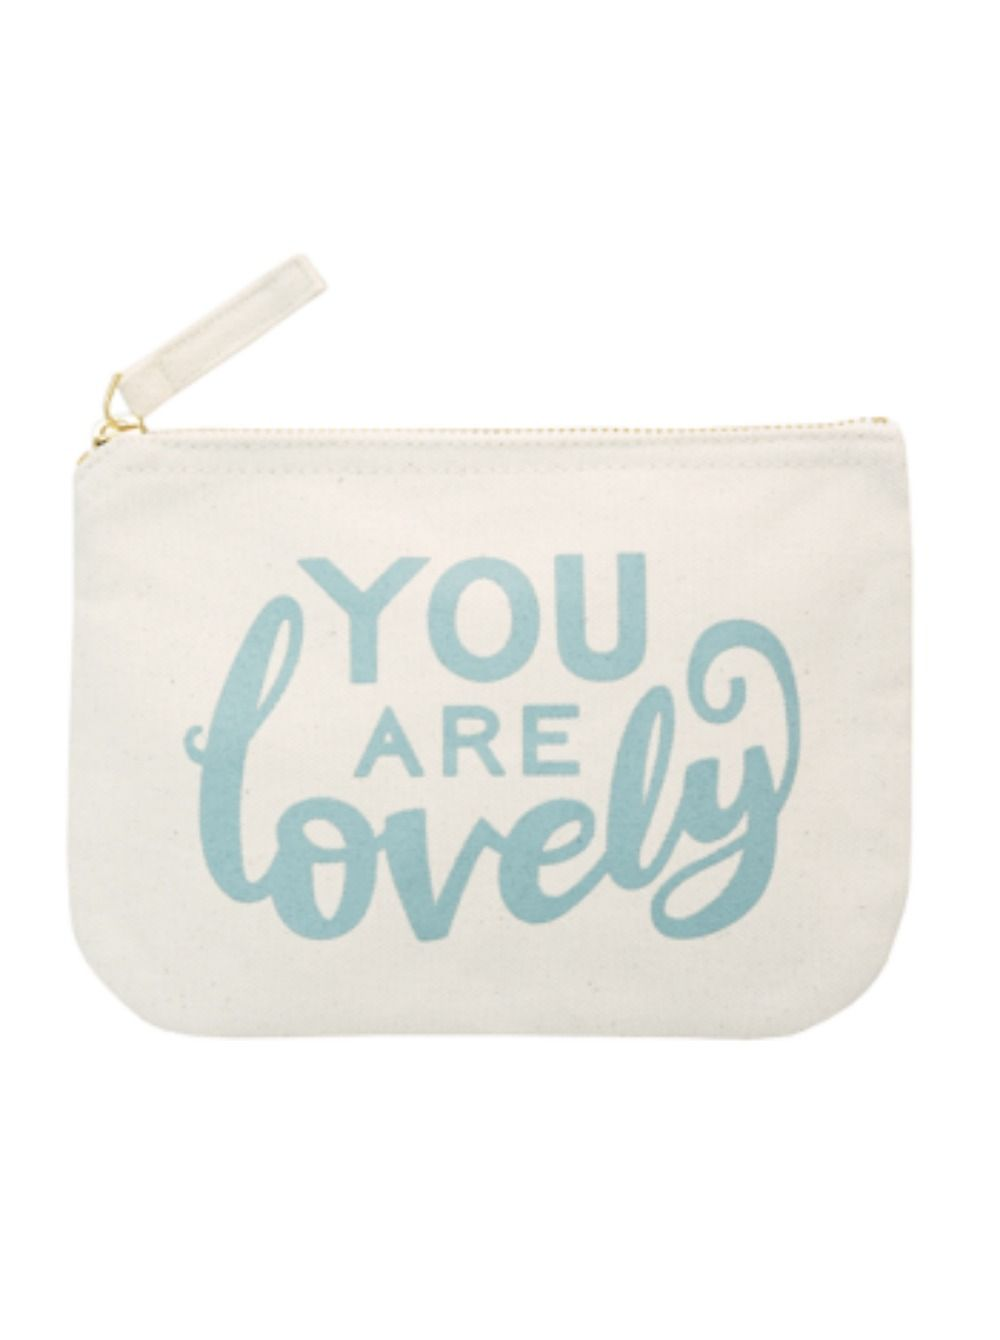 Small Make Up Pouch - You Are Lovely